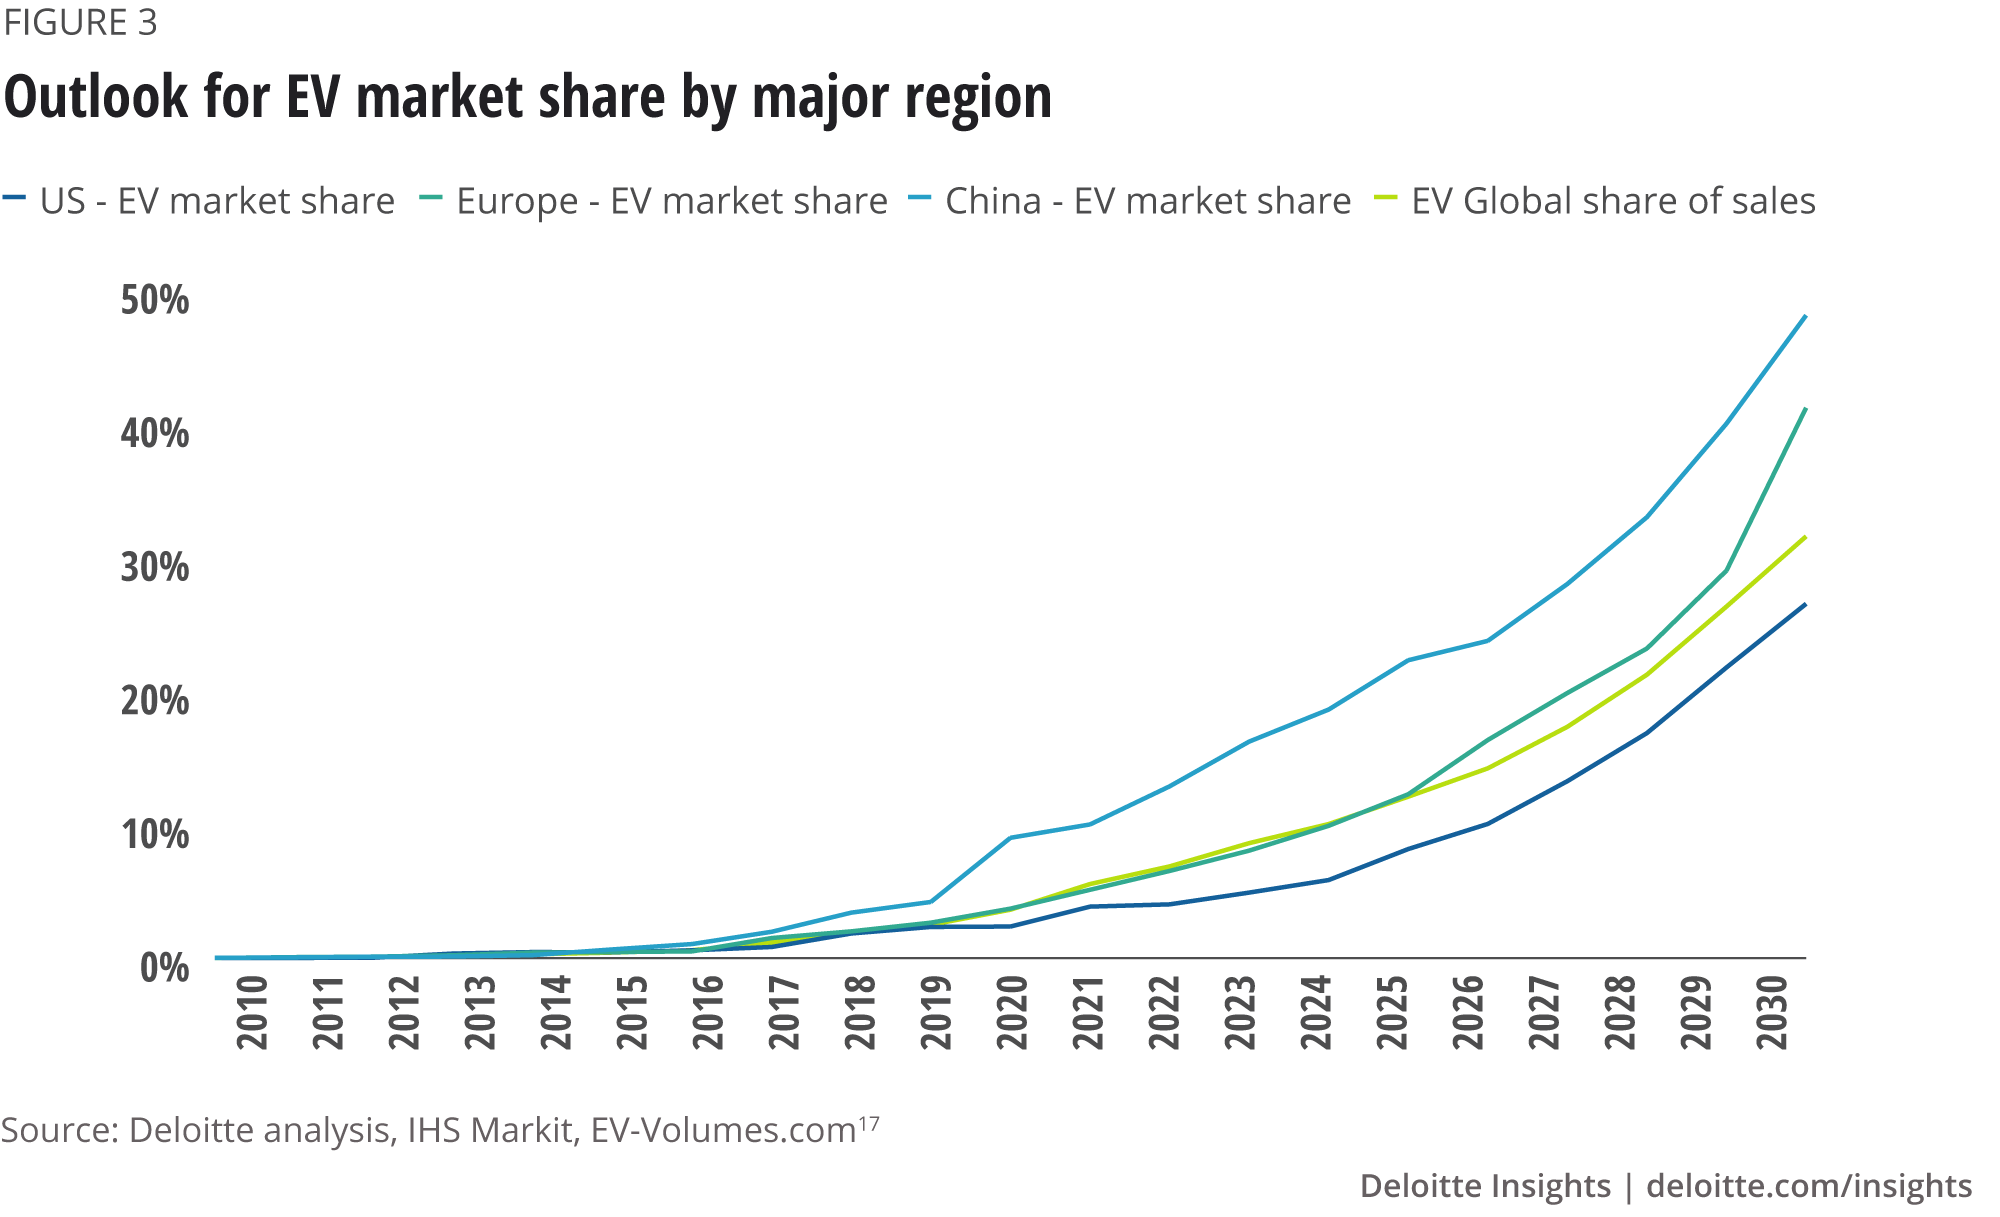 Outlook for EV market share by major region